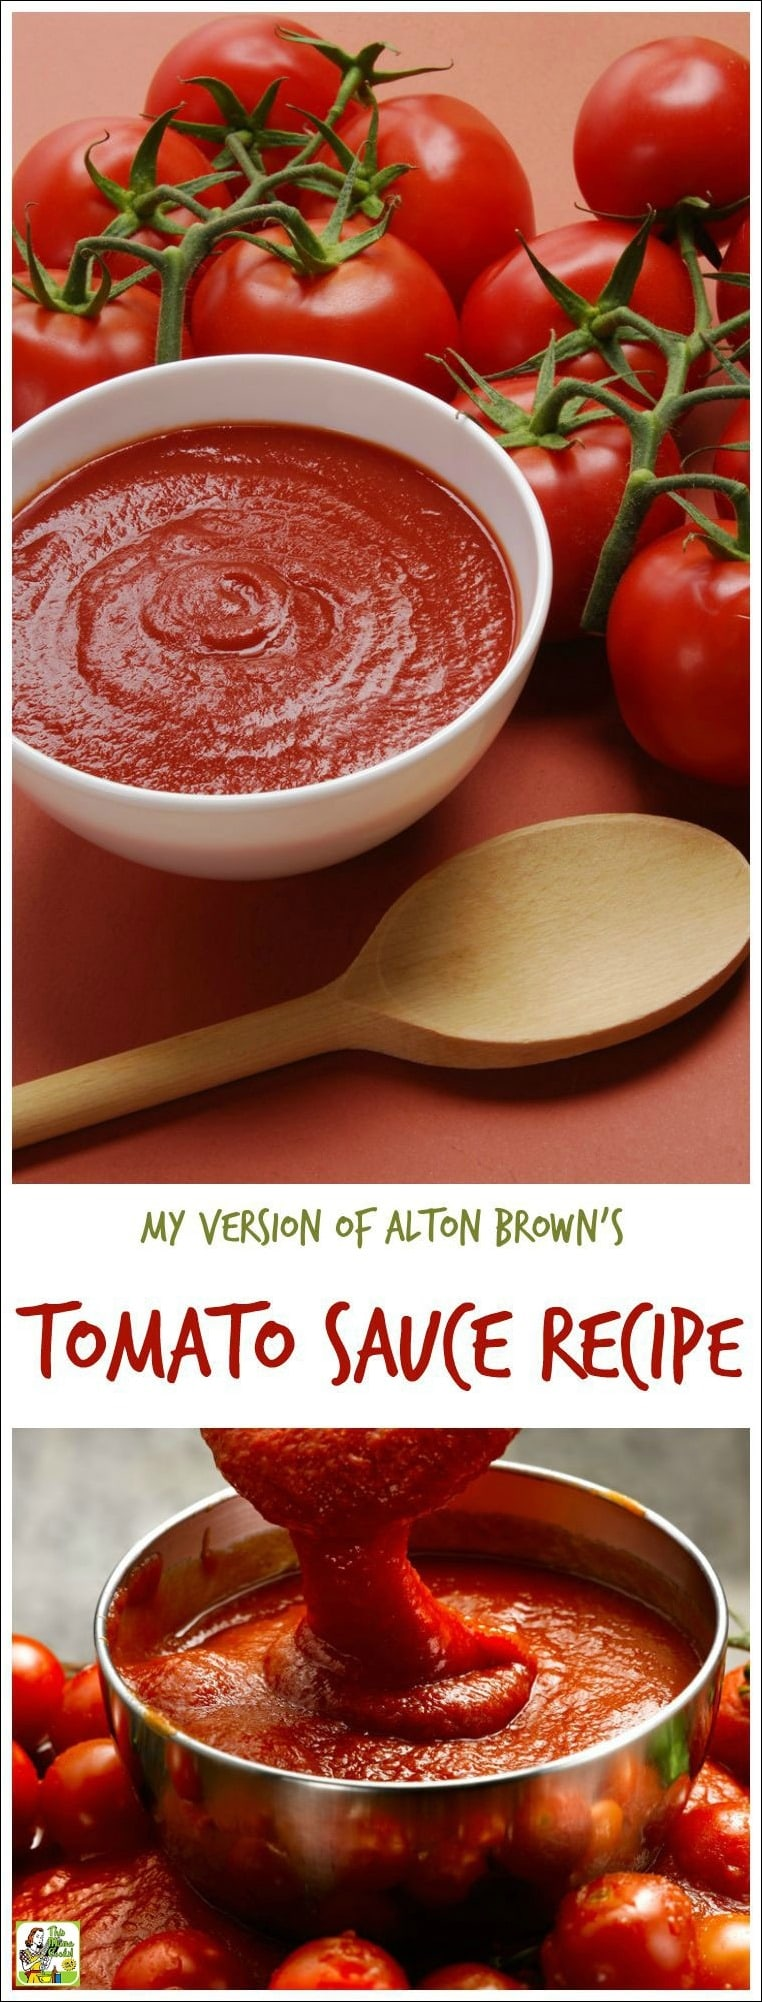 Looking for an easy homemade tomato sauce recipe? Or want to make easy fresh tomato pasta sauce from scratch? Here's my version of Alton Brown's tomato sauce recipe. Double the recipe and freeze half and you'll have spaghetti sauce in the freezer ready to go for dinner later!